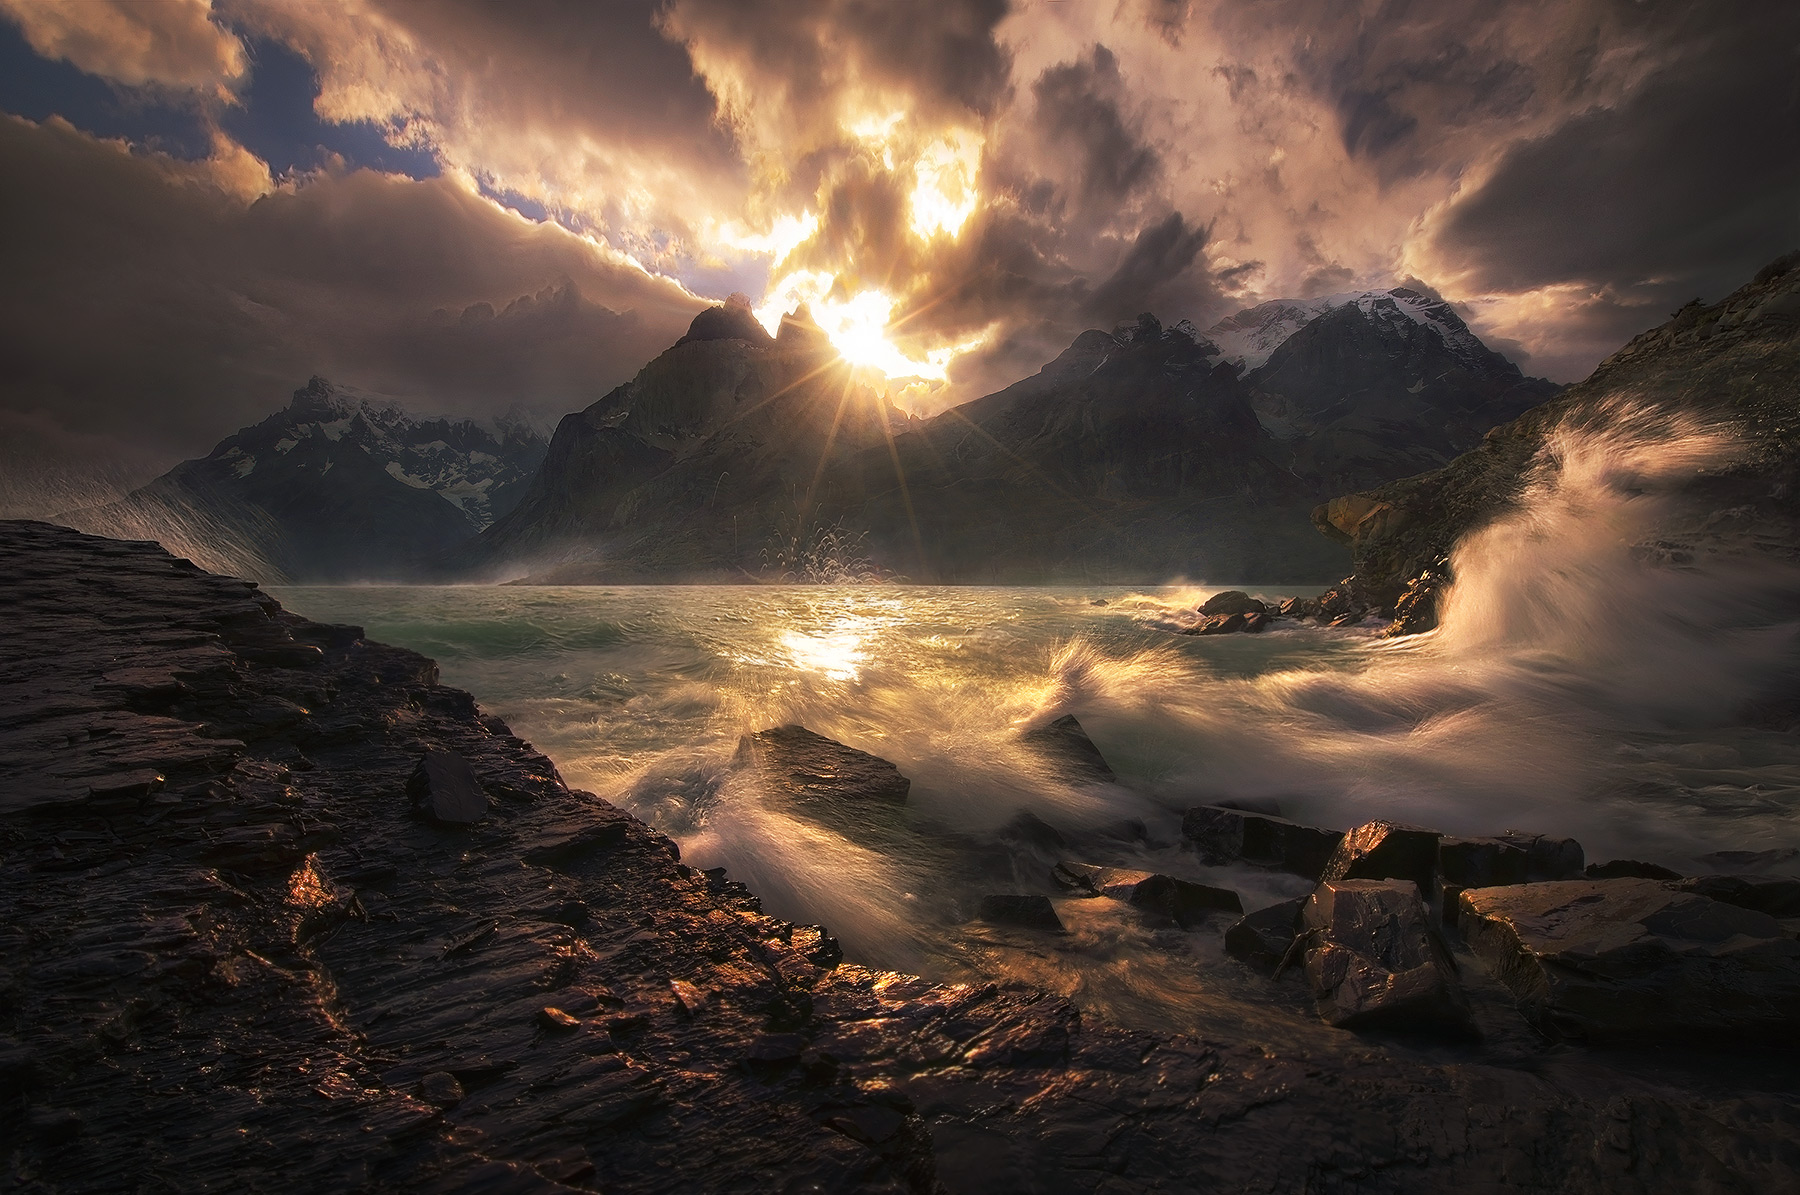 crashing, waves, patagonia, torres del paine, chile, wind, dramatic, sunset, photo